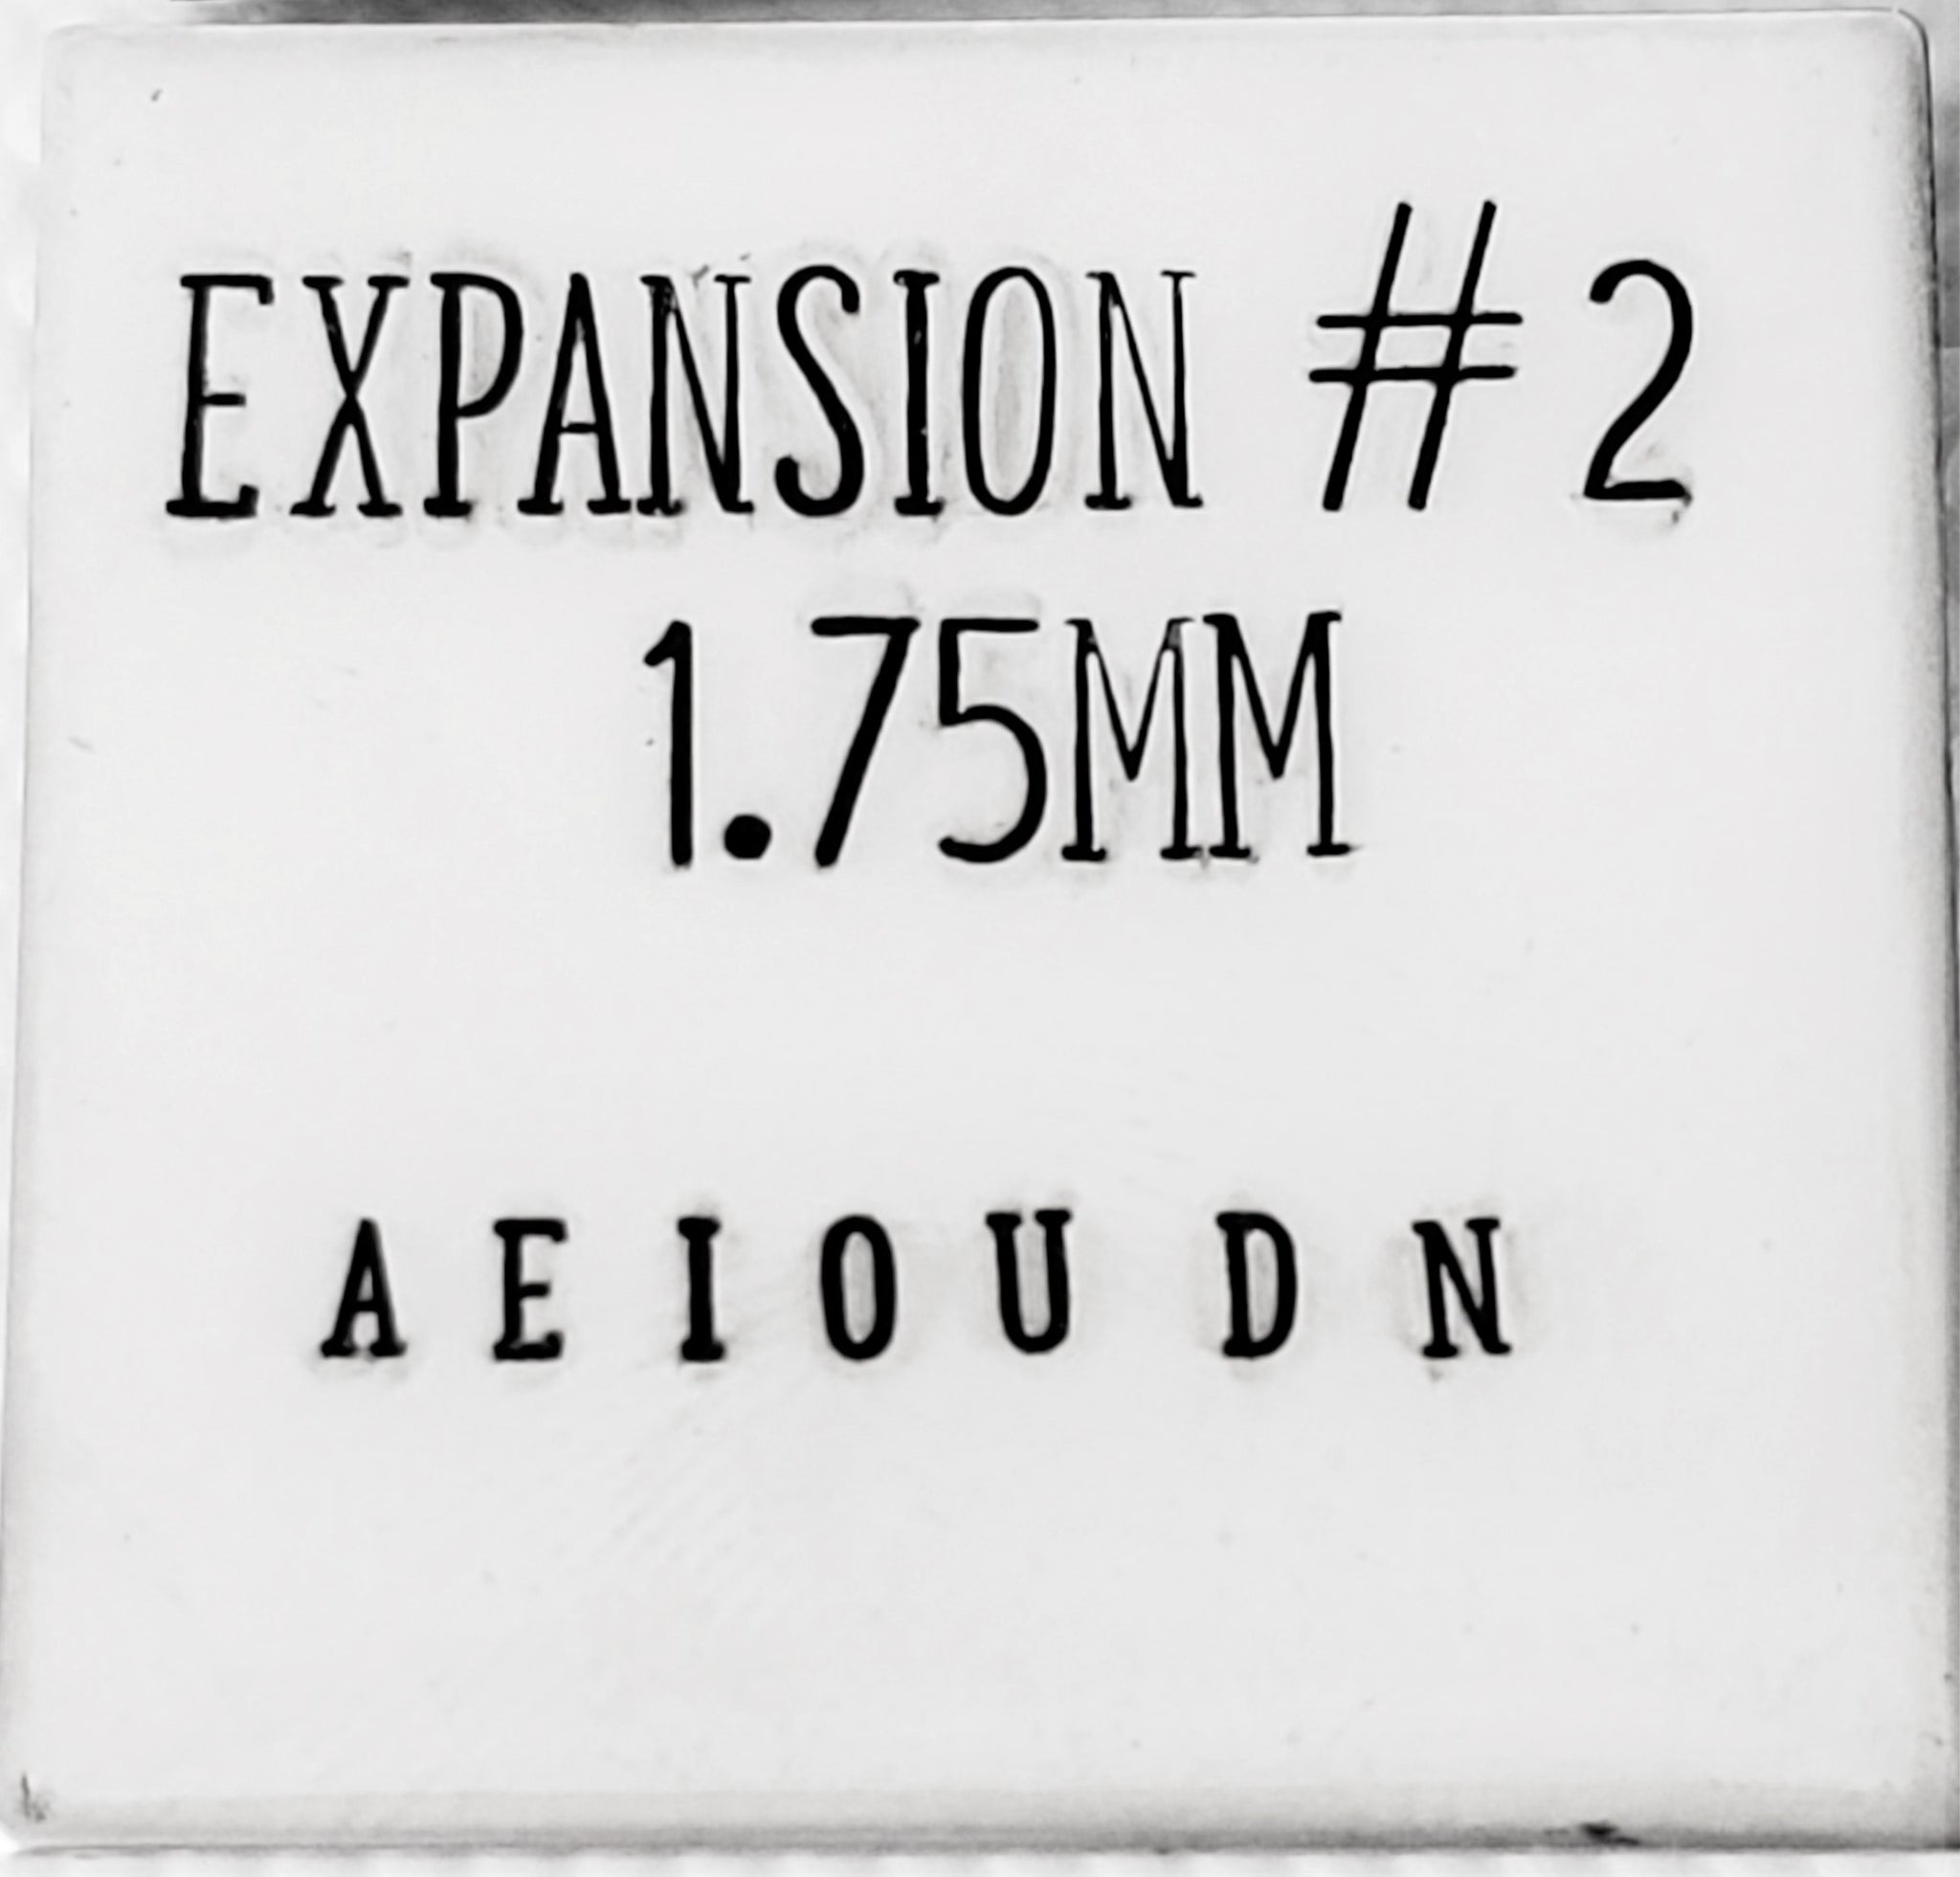 Devious - Expansion 2 (1.75mm) AEIOUND